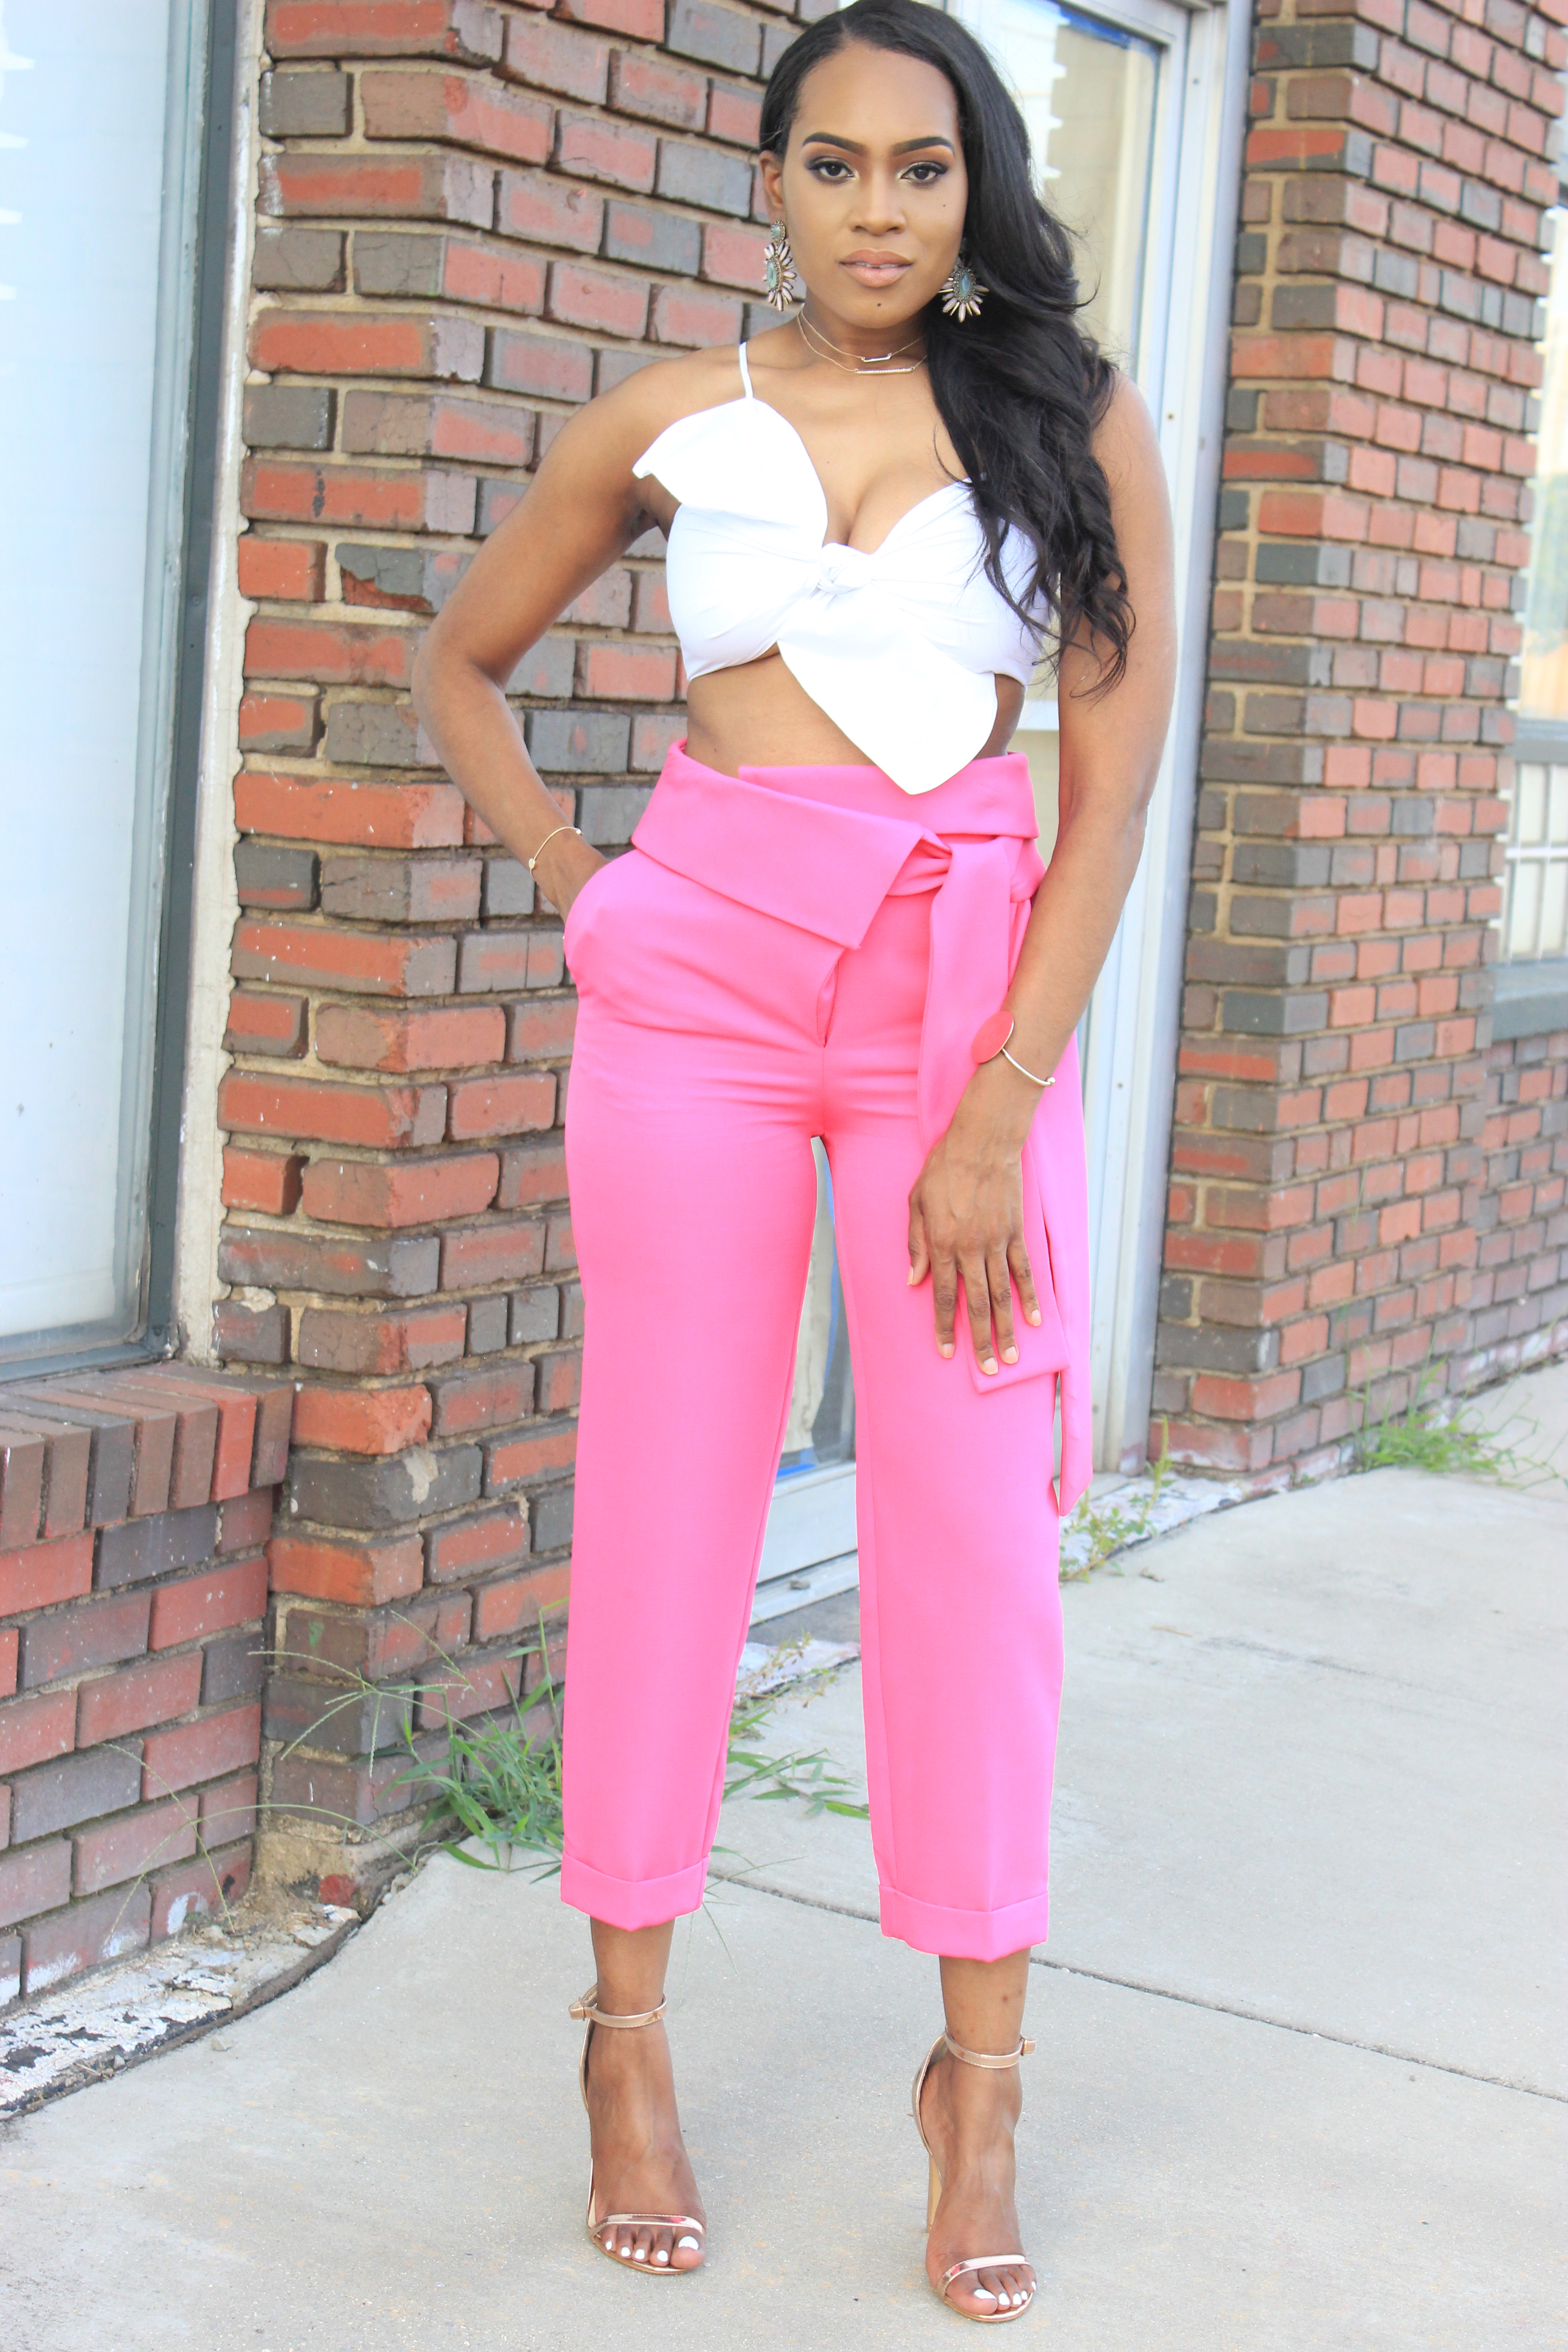 Style files-Hot-pink-asos-pants-with-origami-waist-tie-detail-truffle-collection-barely-there-heel-sandal-rose-gold-forever-21-contemporary-white-cropt-top-perfect-summer-pants-top-birmingham-bloggers-oohlalablog-9